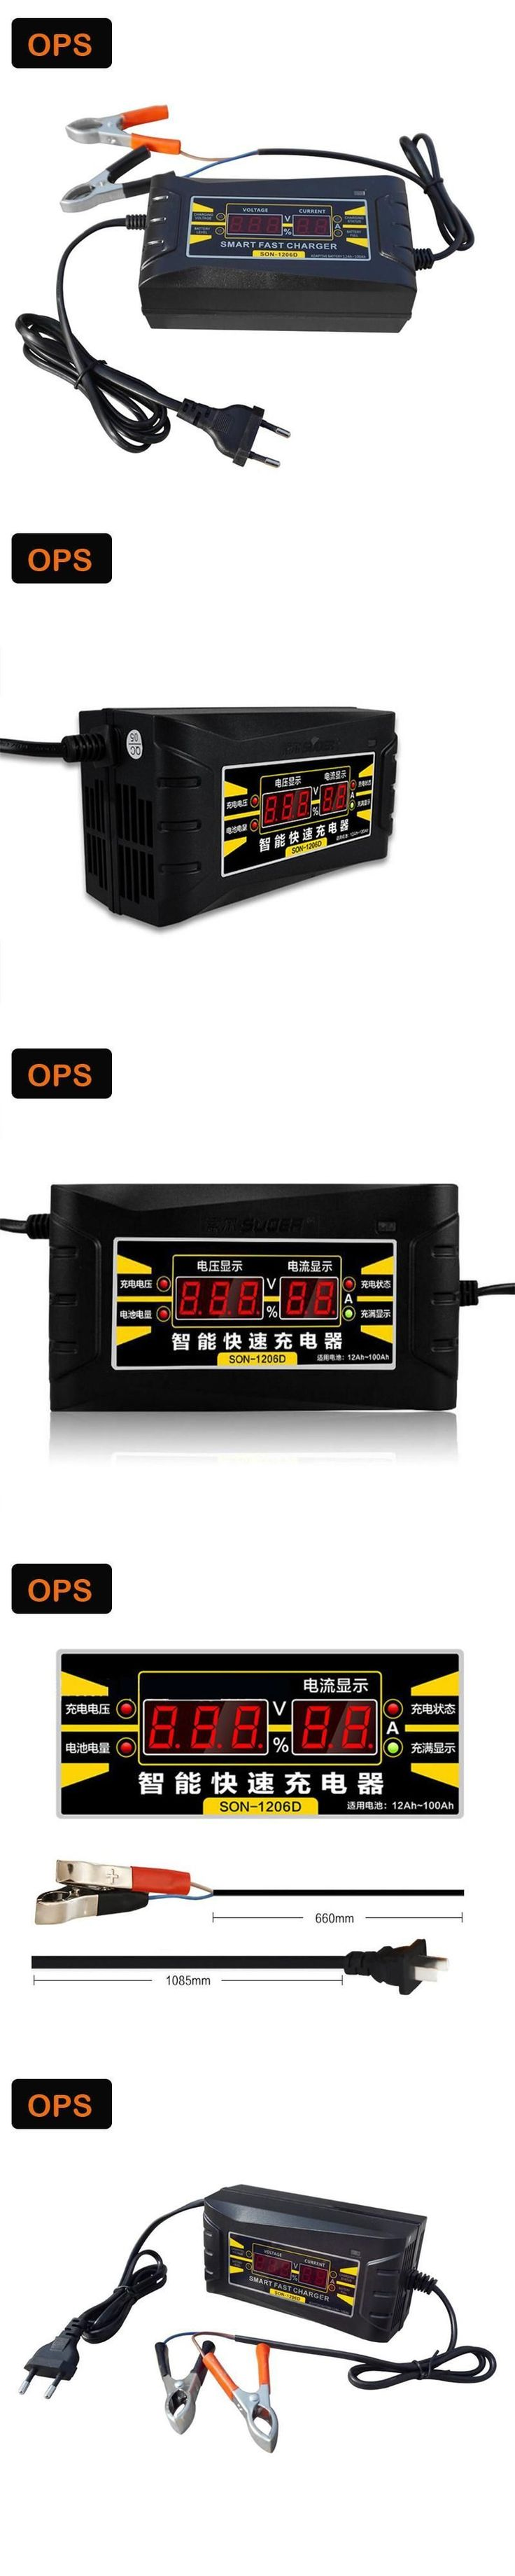 LCD Display  12V 6A  Automatic Smart repair Lead Acid Battery Charger For Car/ Motorcycle&lood-zurr desulfator acculader